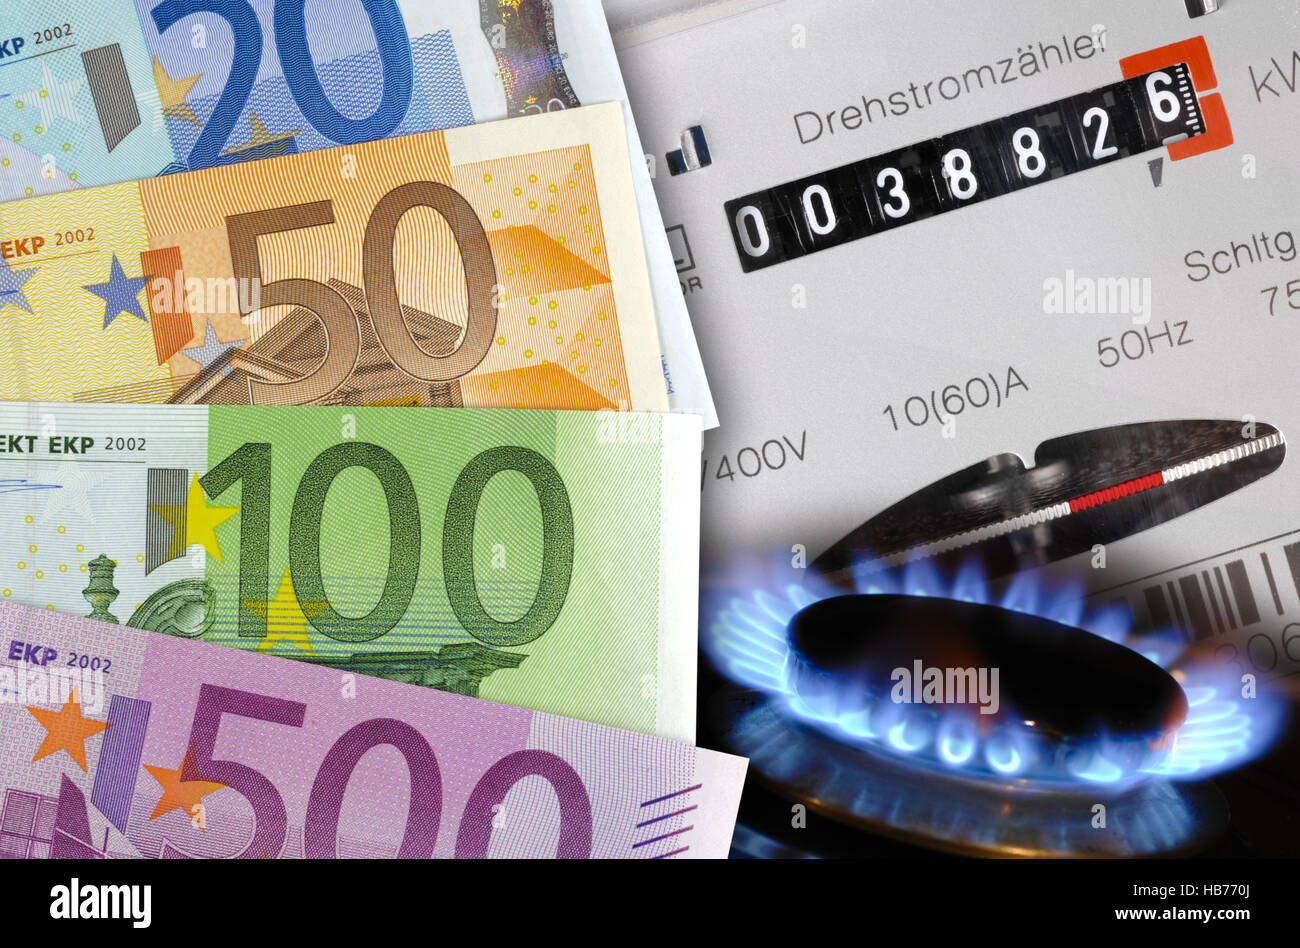 costs for gas and electricity - Stock Image